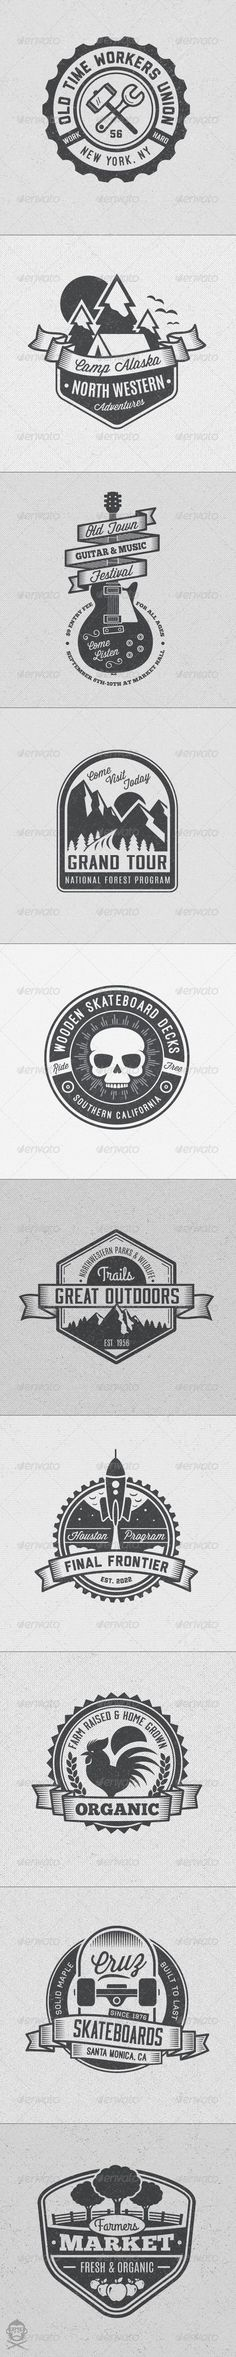 Vintage Style Badges and Logos Template | Buy and Download: http://graphicriver.net/item/vintage-style-badges-and-logos-vol-4/8594929?WT.ac=category_thumb&WT.z_author=GraphicMonkee&ref=ksioks: